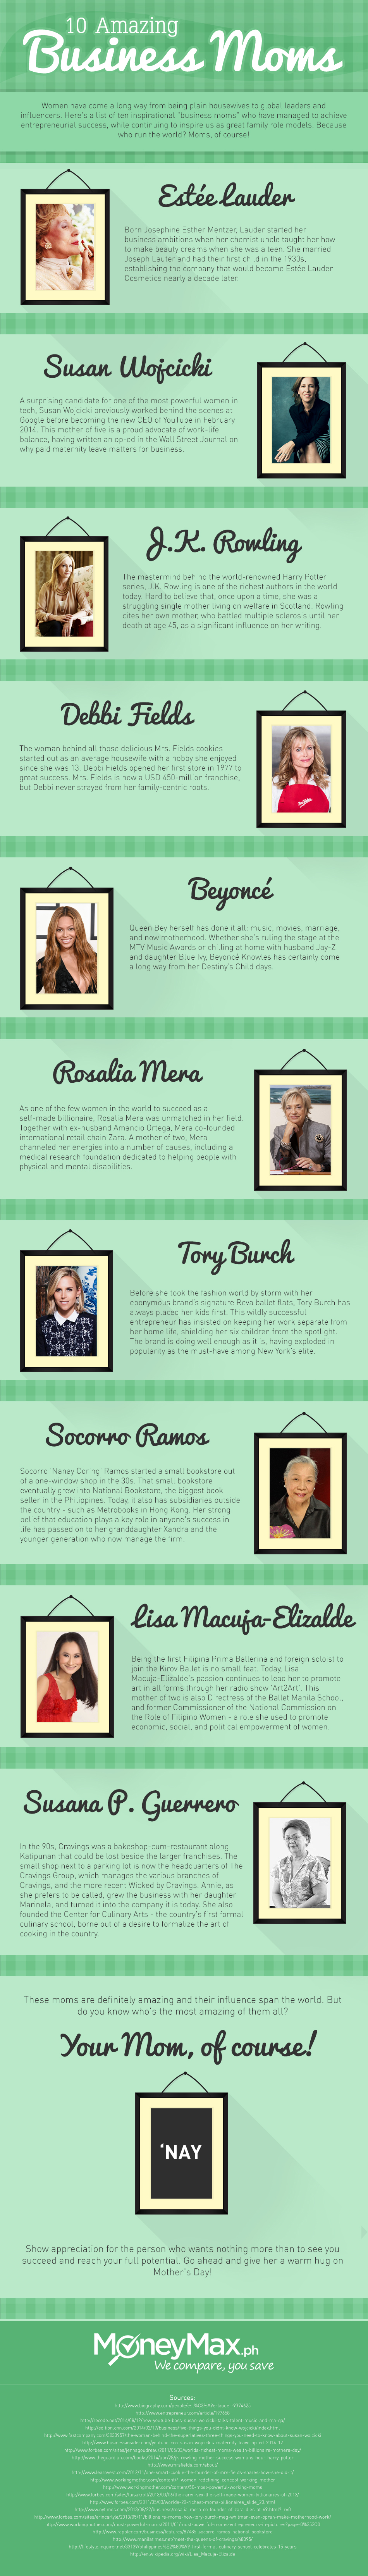 Business Moms Infographic